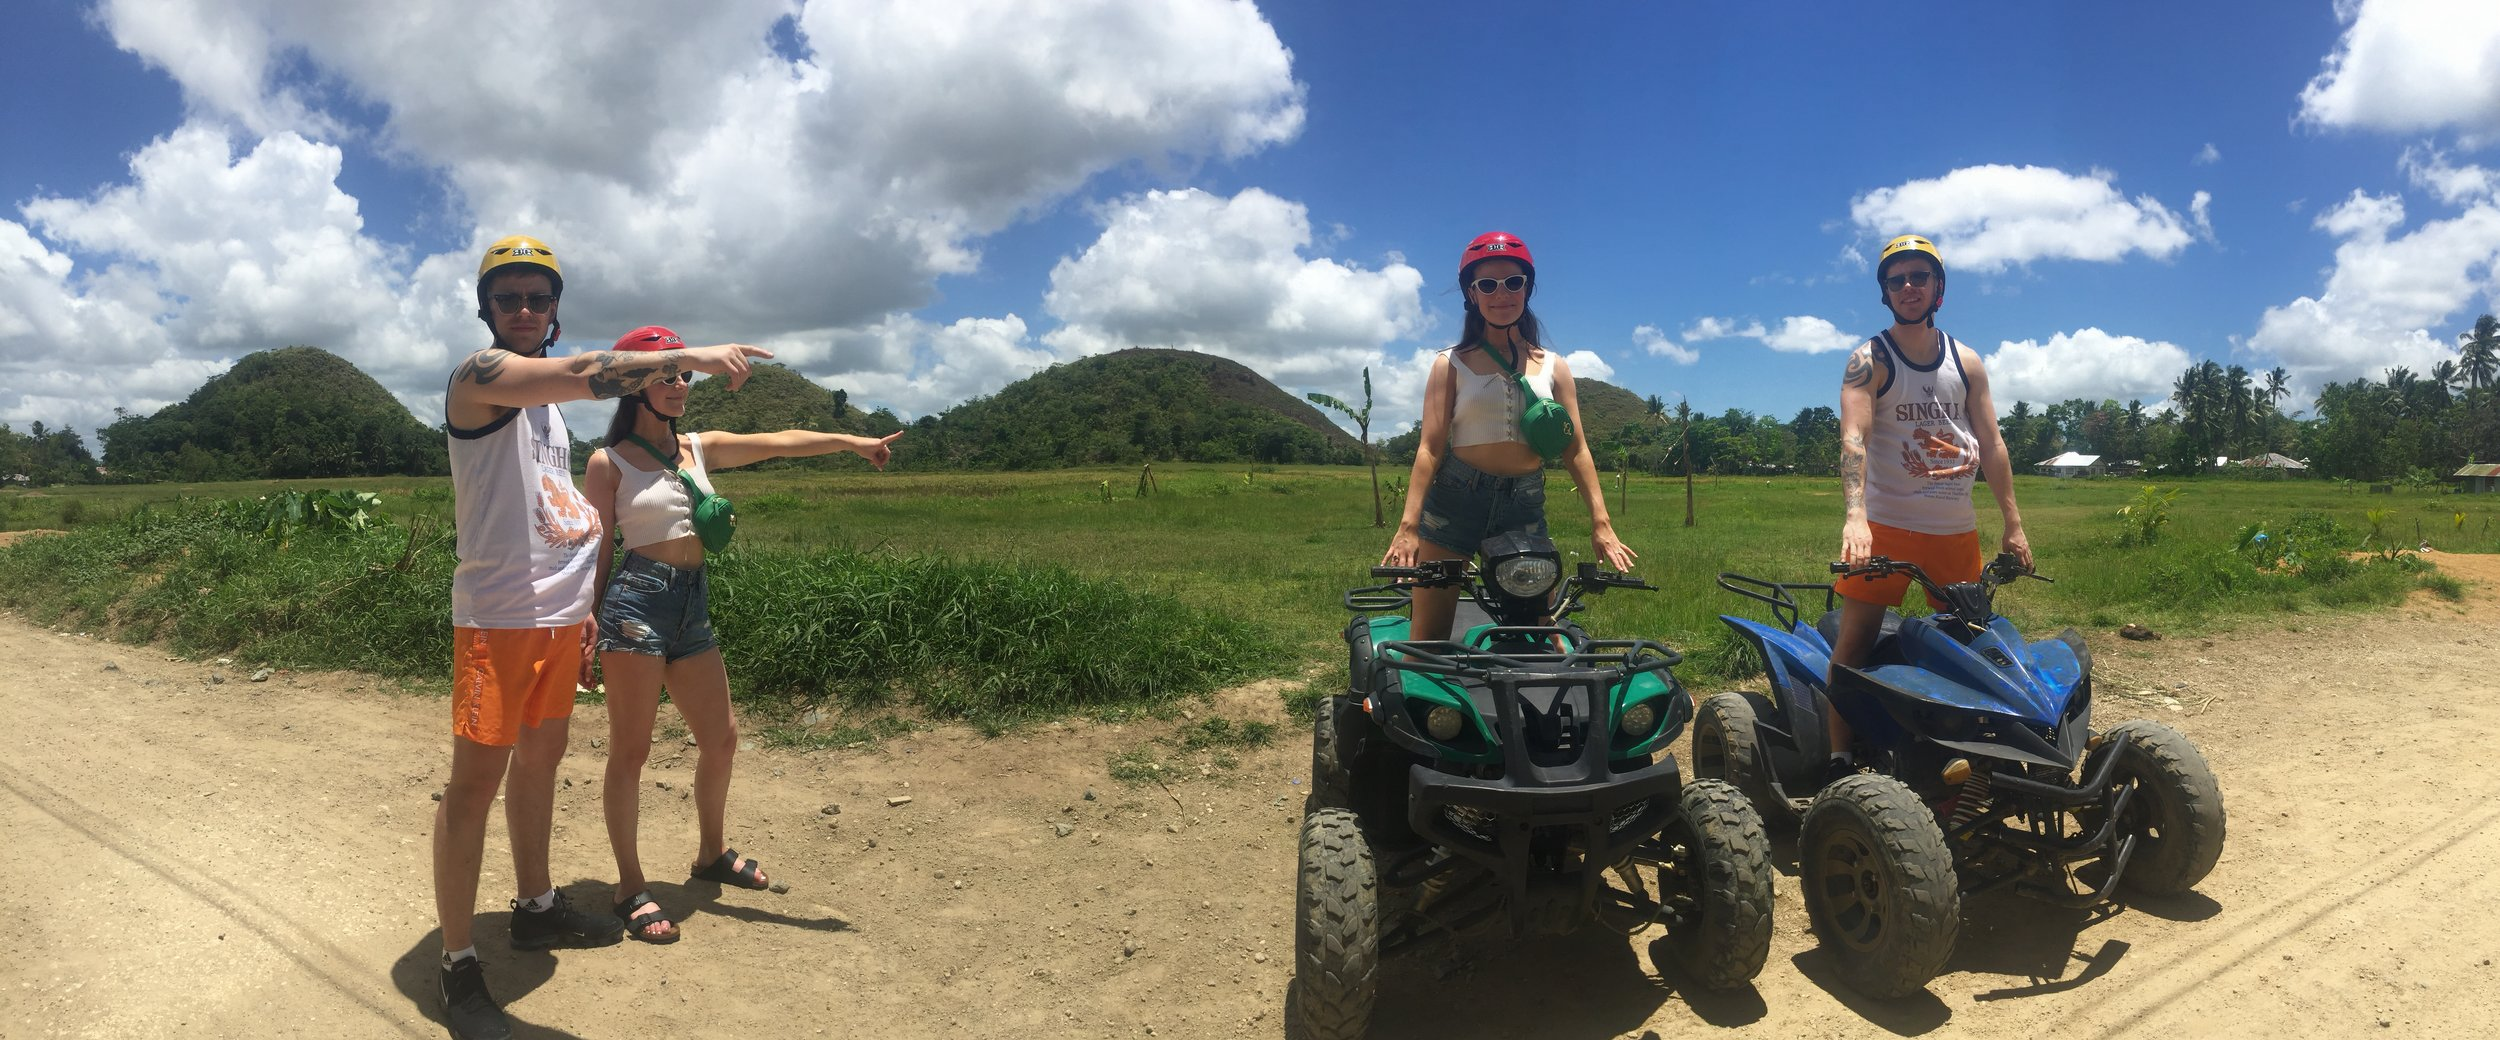 ATV driving across the world famous Chocolate Hills in central Bohol